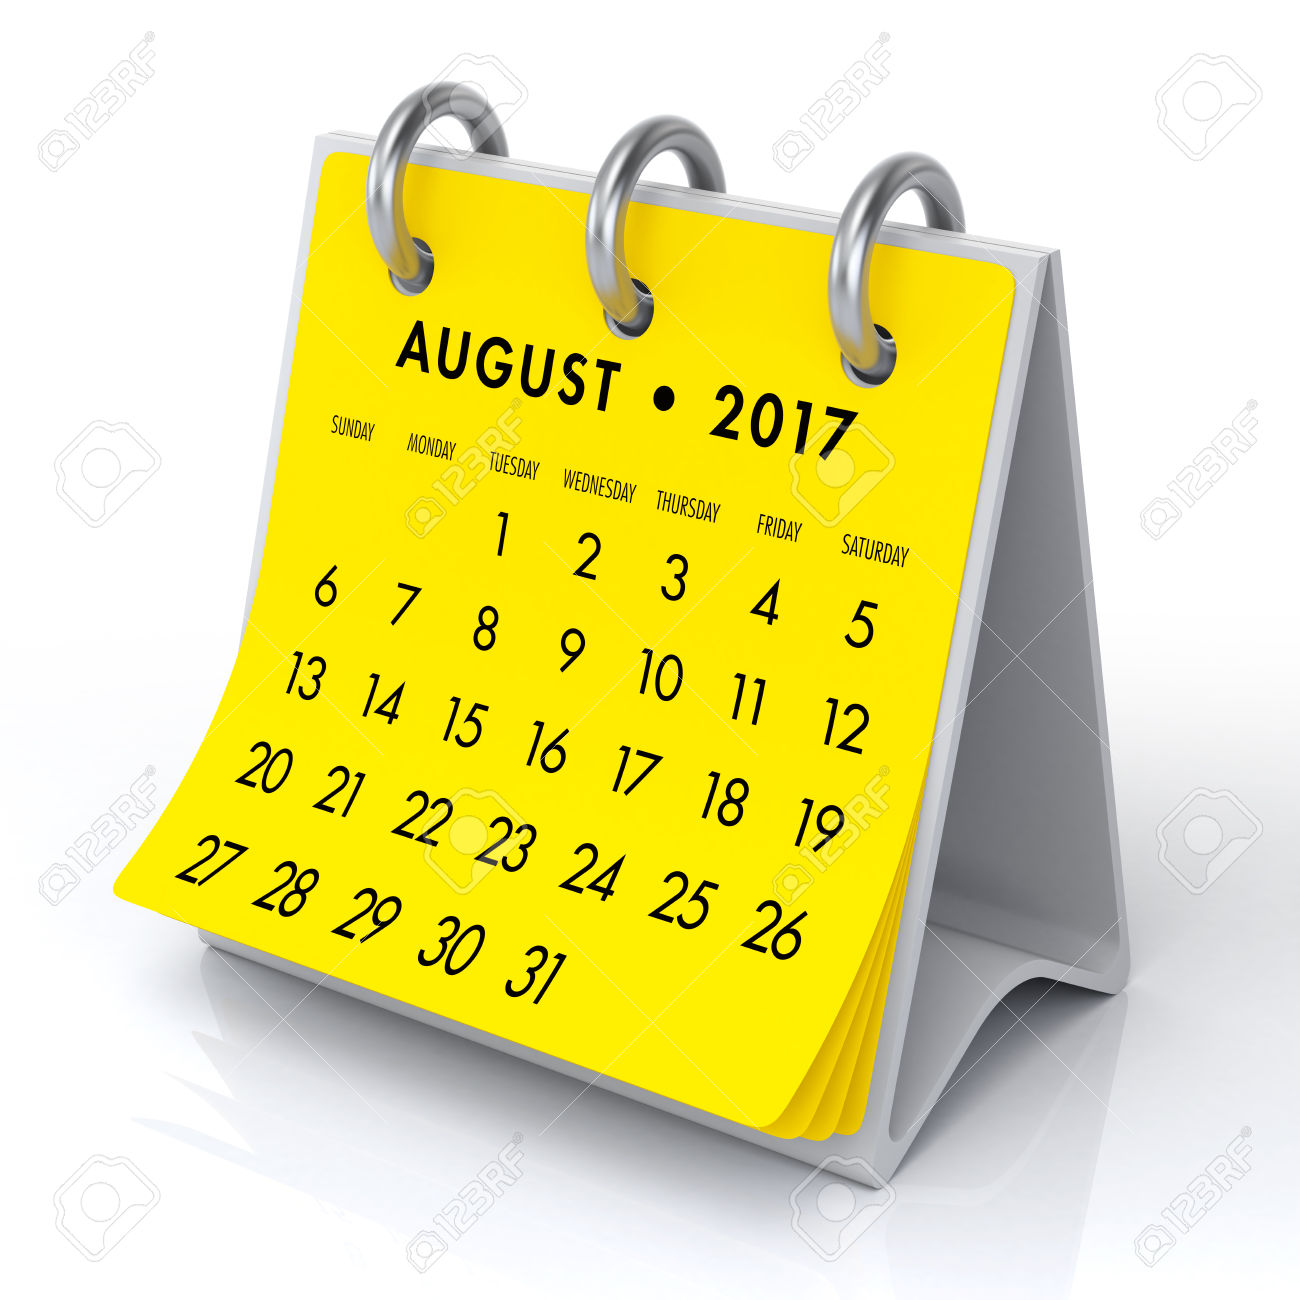 August clipart calendar. Printable template with holidays